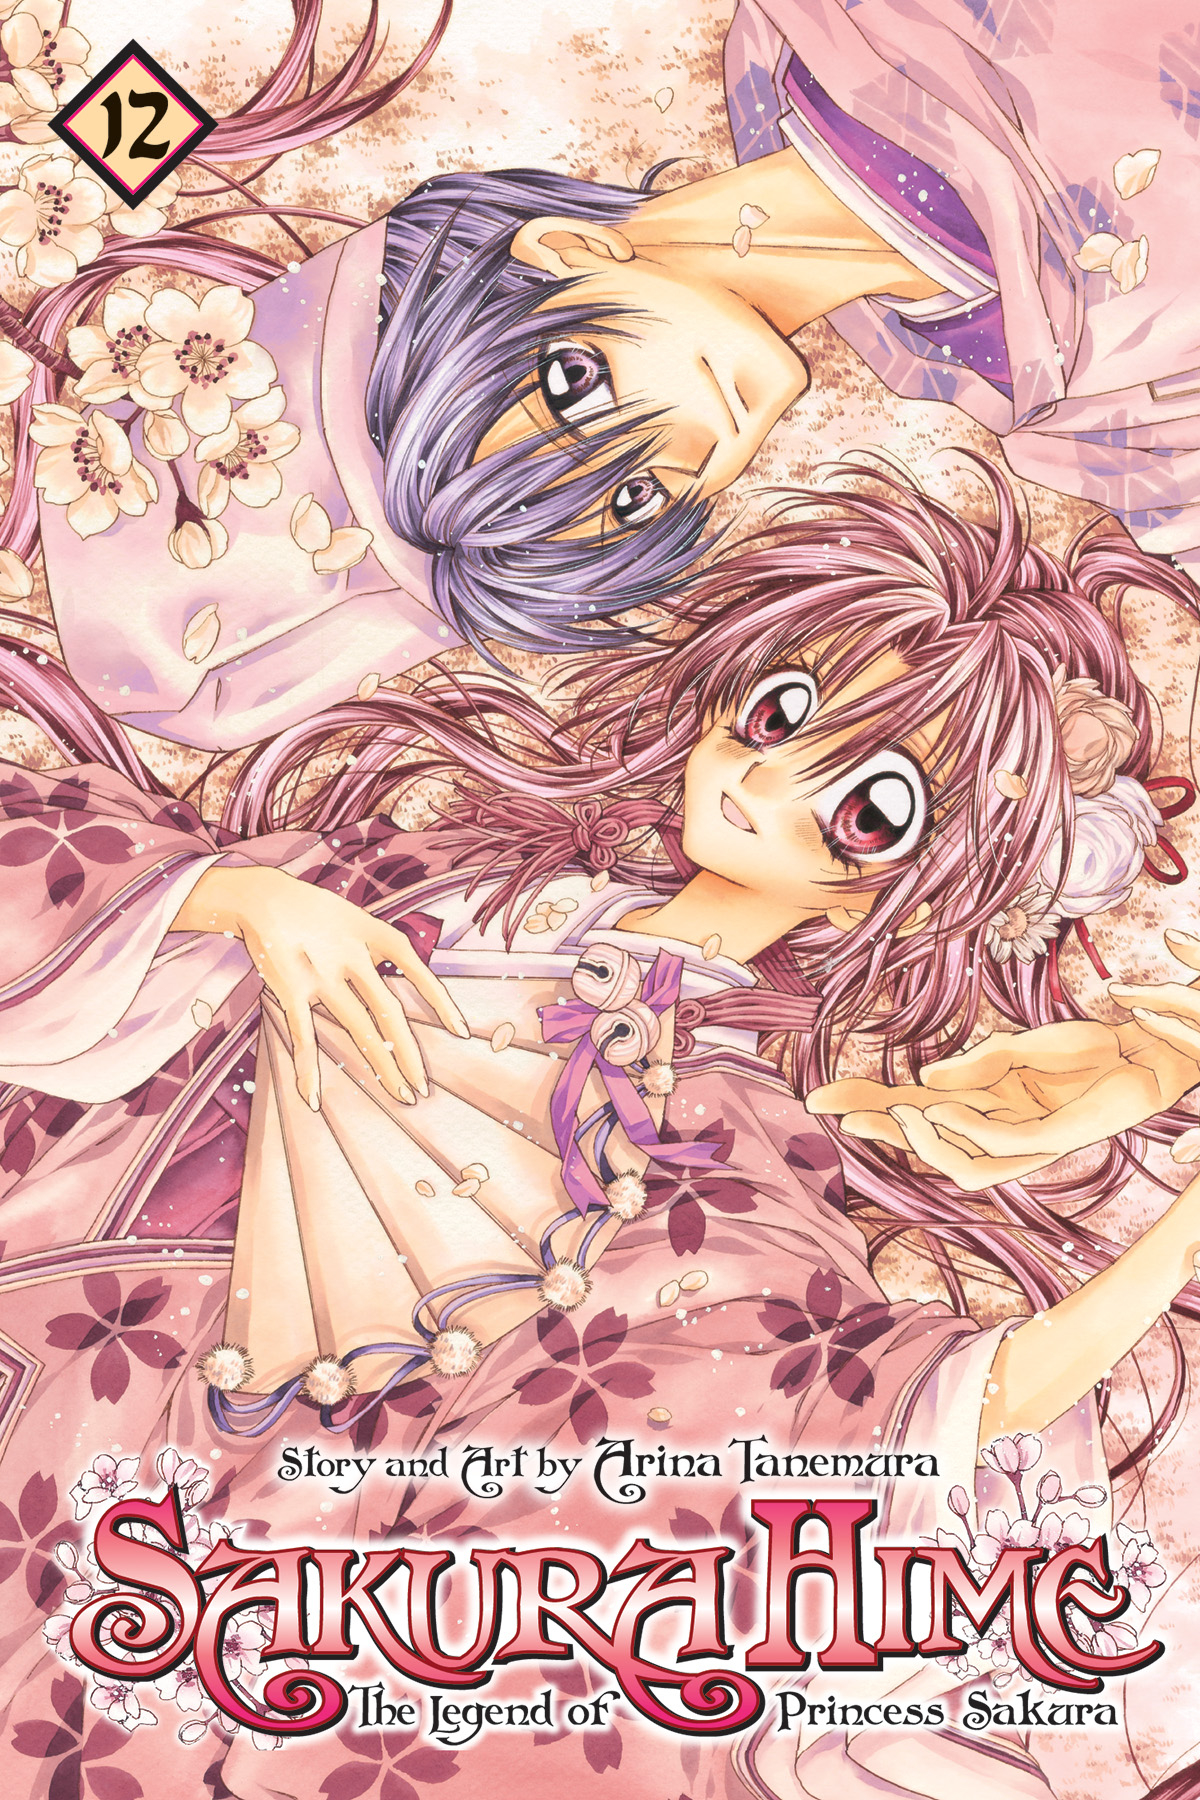 SAKURA HIME LEGEND OF PRINCESS SAKURA GN VOL 12